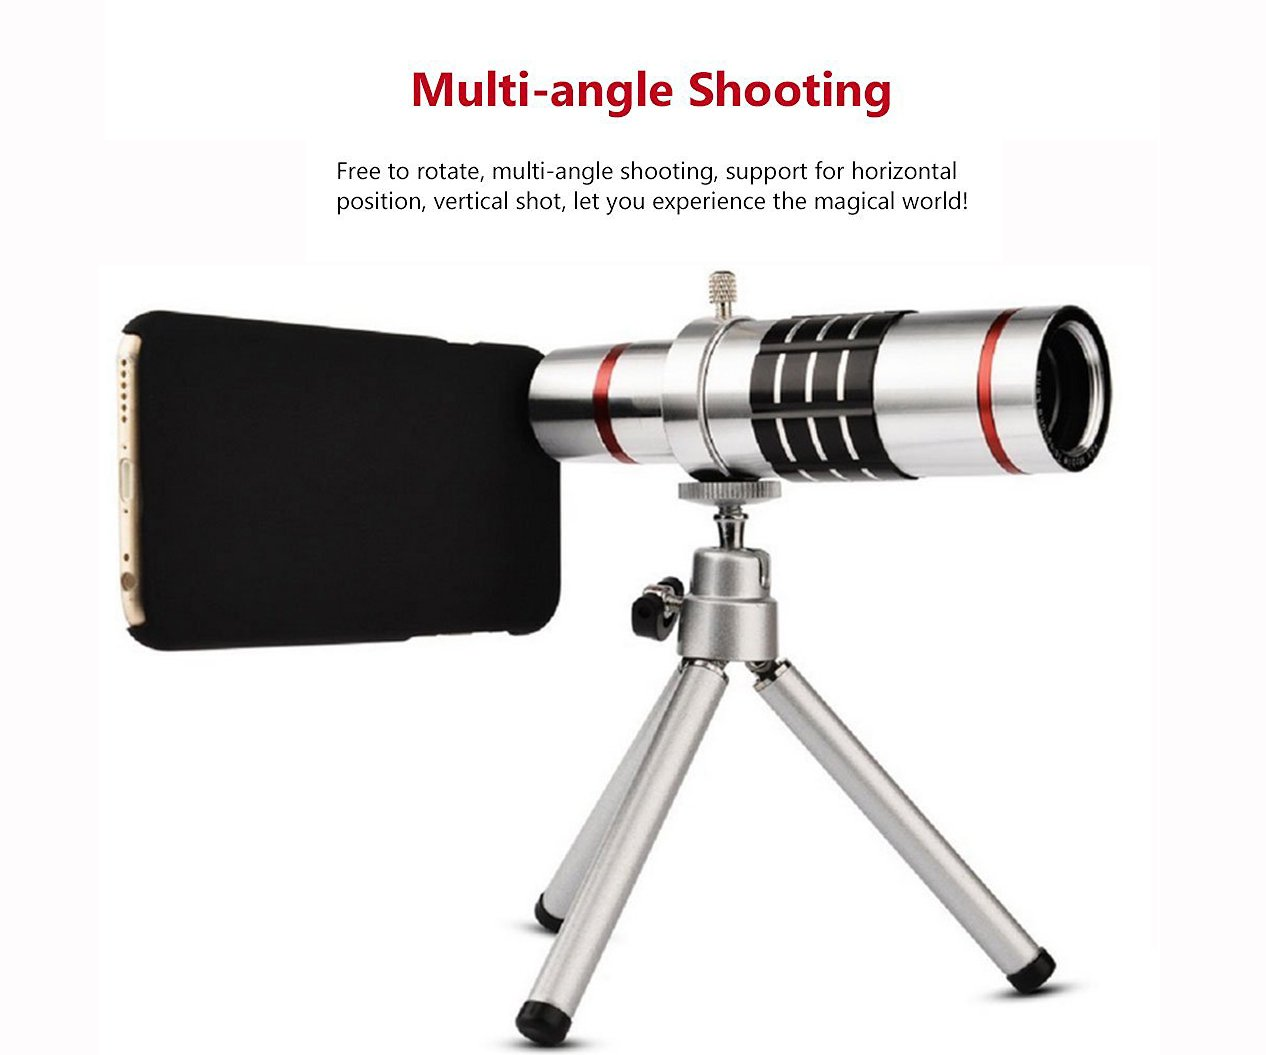 Youniker Optical Camera Lens Kit for Samsung Galaxy S7 Edge,18x Manual Focus Telephoto Lens for Samsung S7 Edge,Including 18x Aluminum Zoom Telescope Camera Lens With Tripod + Samsung S7 Edge Case by Youniker (Image #4)